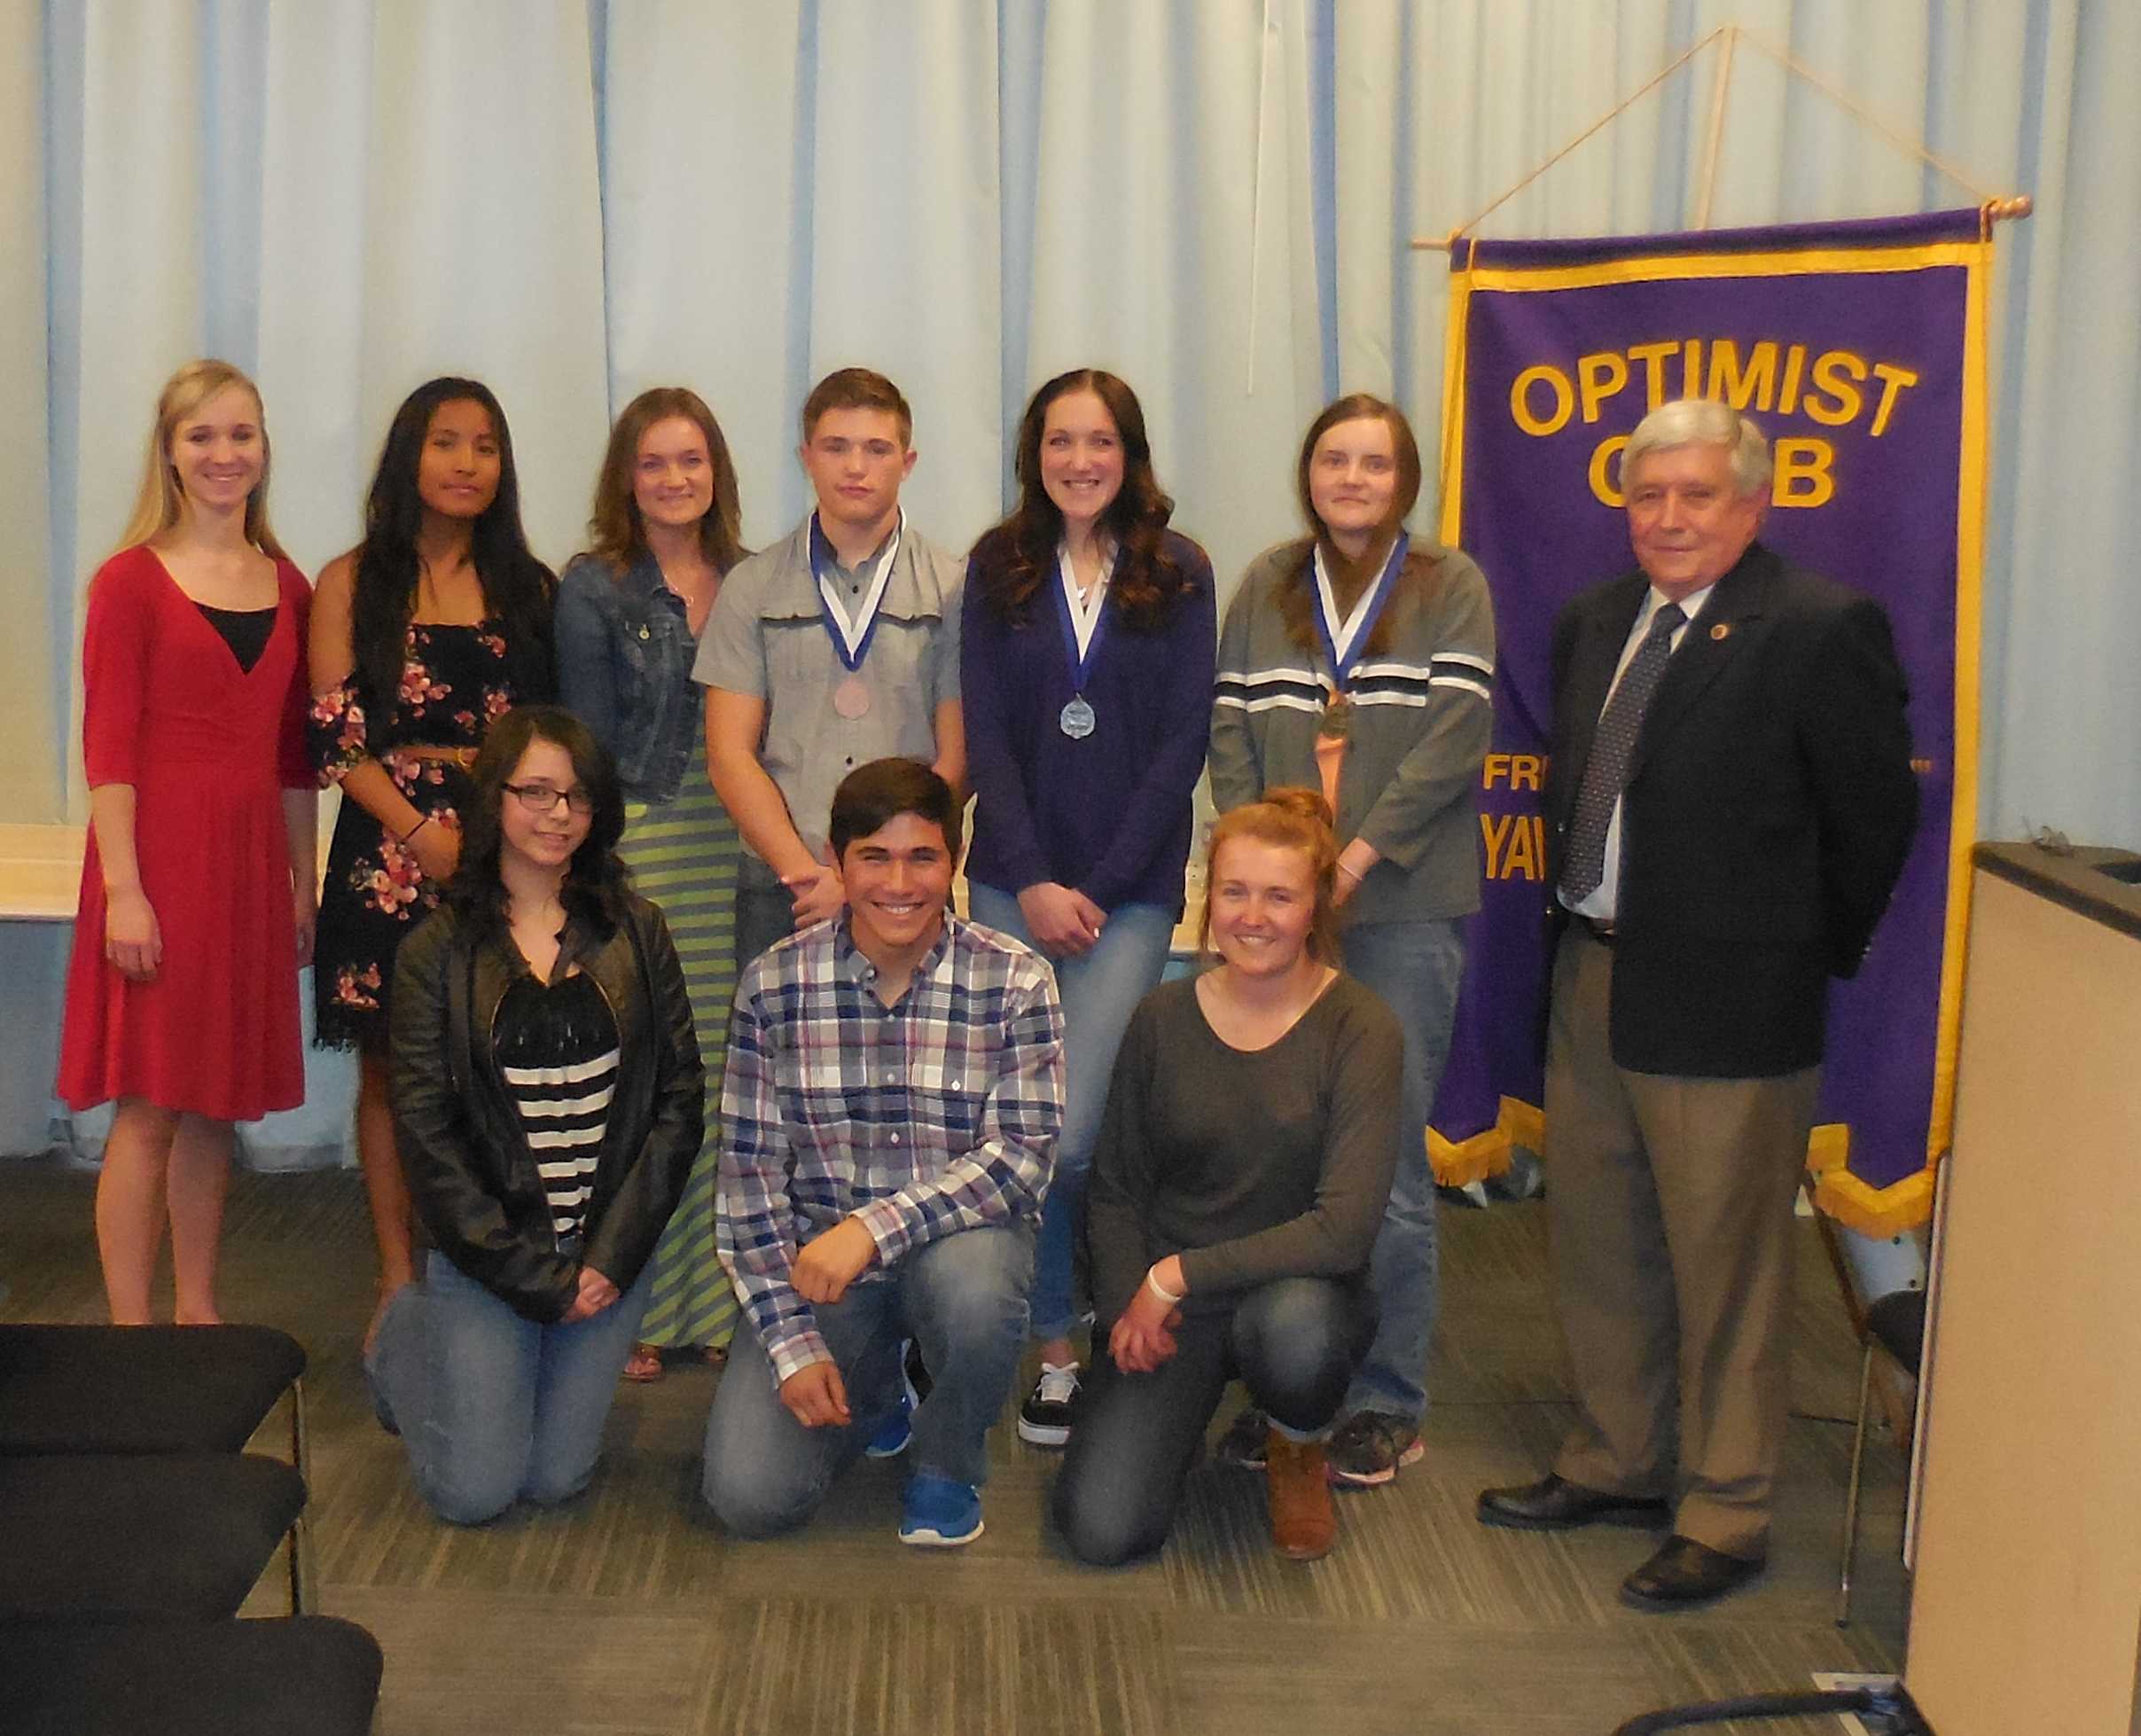 optimist international essay contests The optimist international essay contest is divided into two levels of competition: club and district 2 contestants must enter through a local optimist club, or.